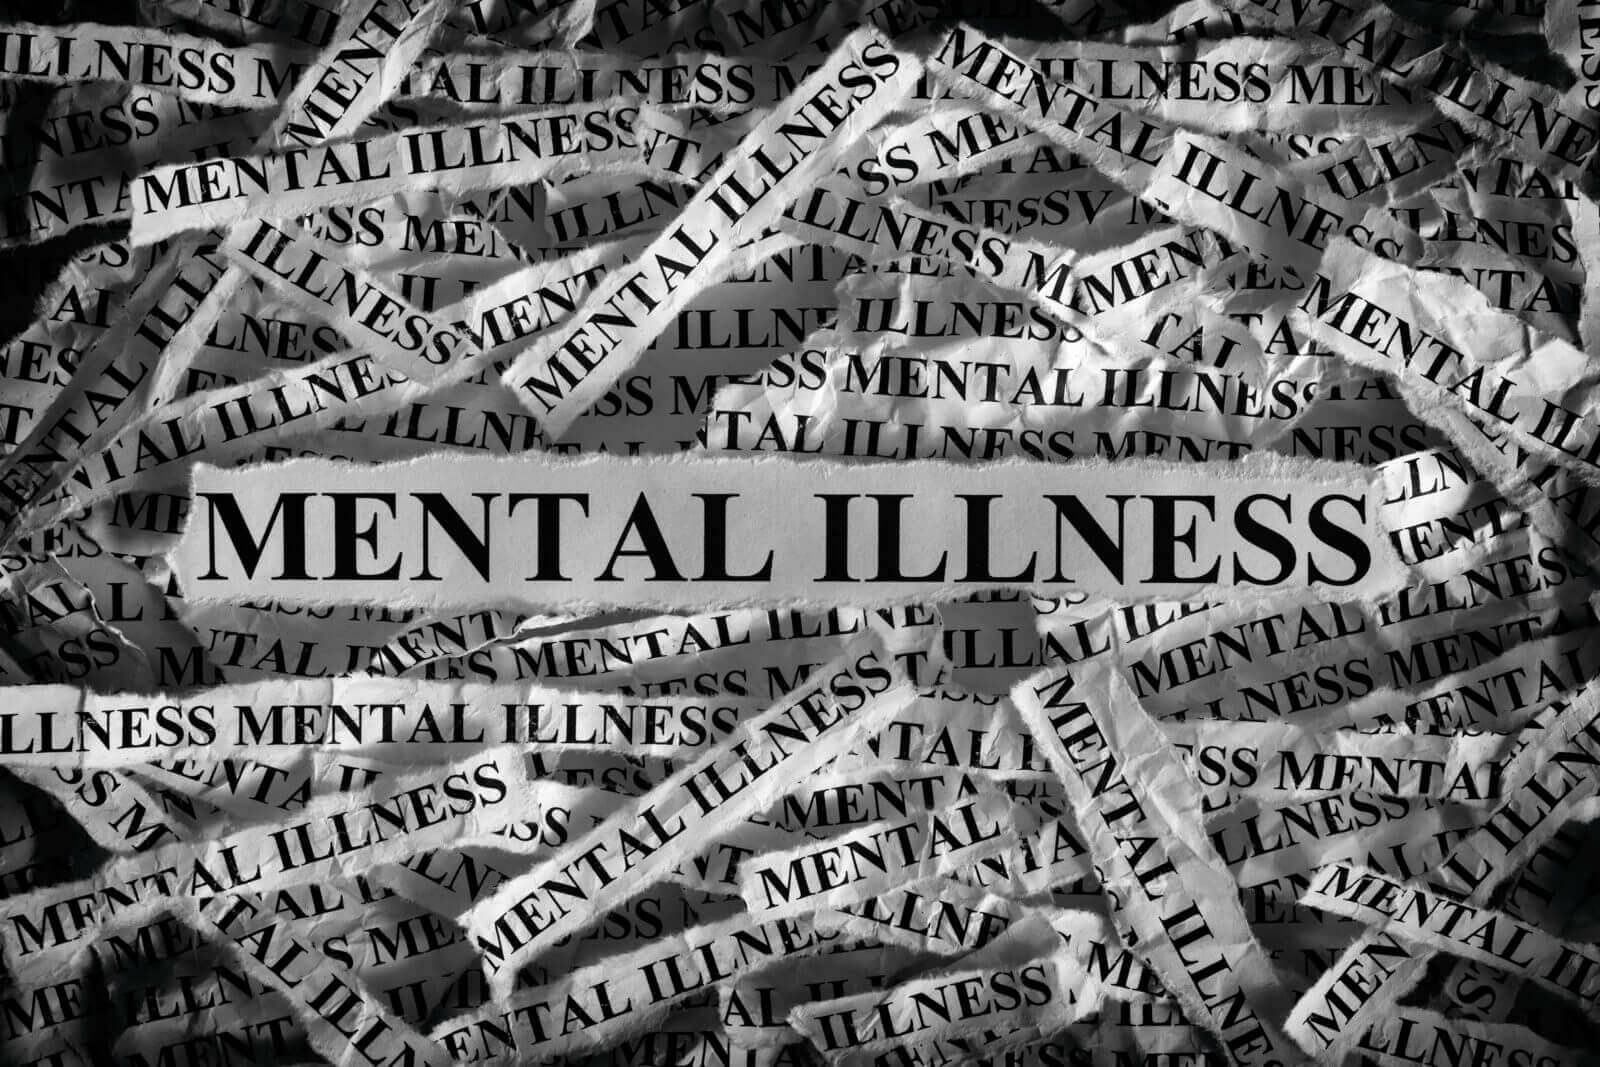 Gov't Senator Calls for End to Mental Illness Stigma